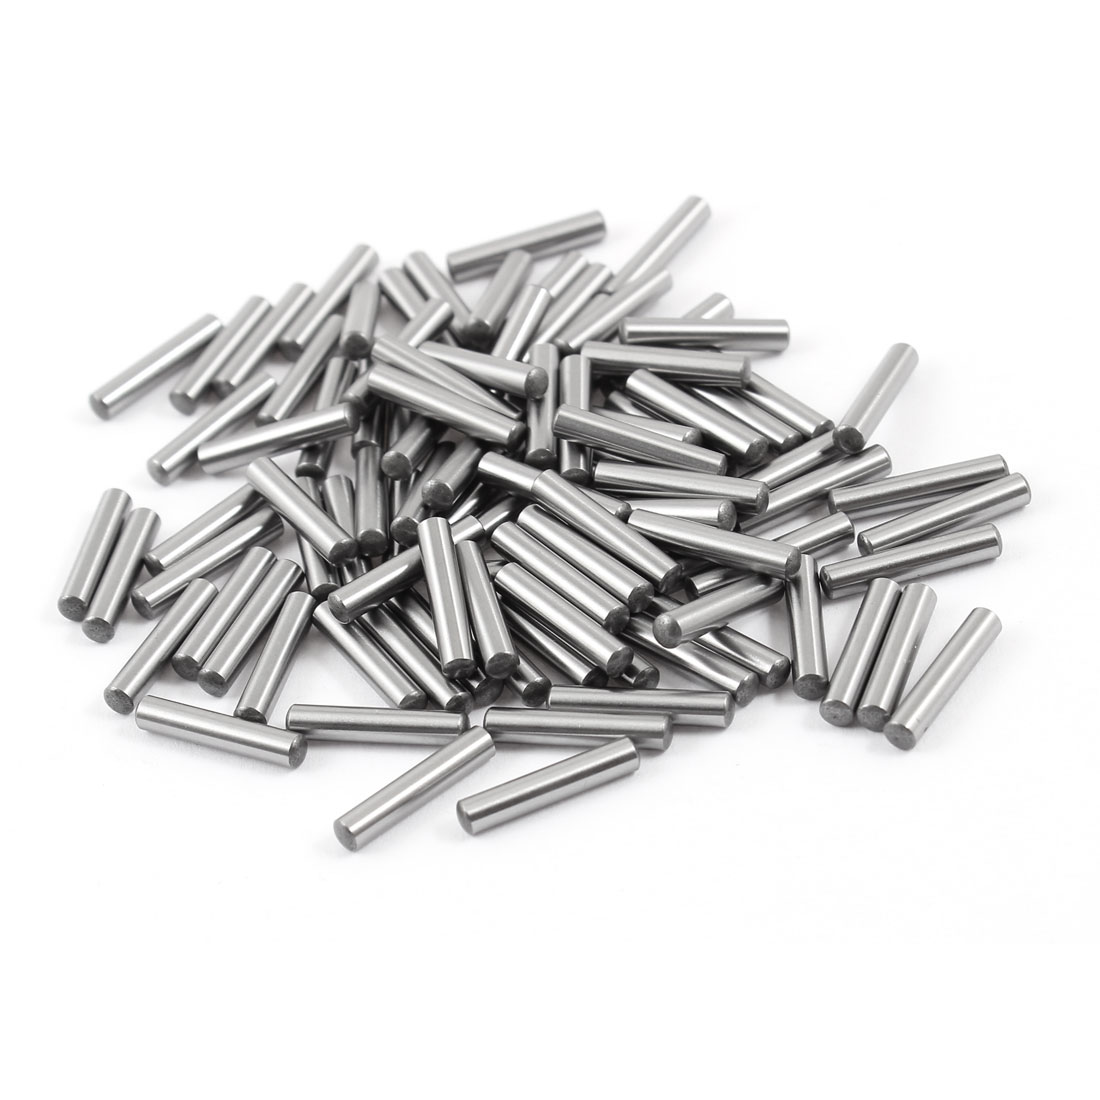 100 Pcs 3mm x 15.8mm Parallel Dowel Pins Fasten Elements Silver Tone